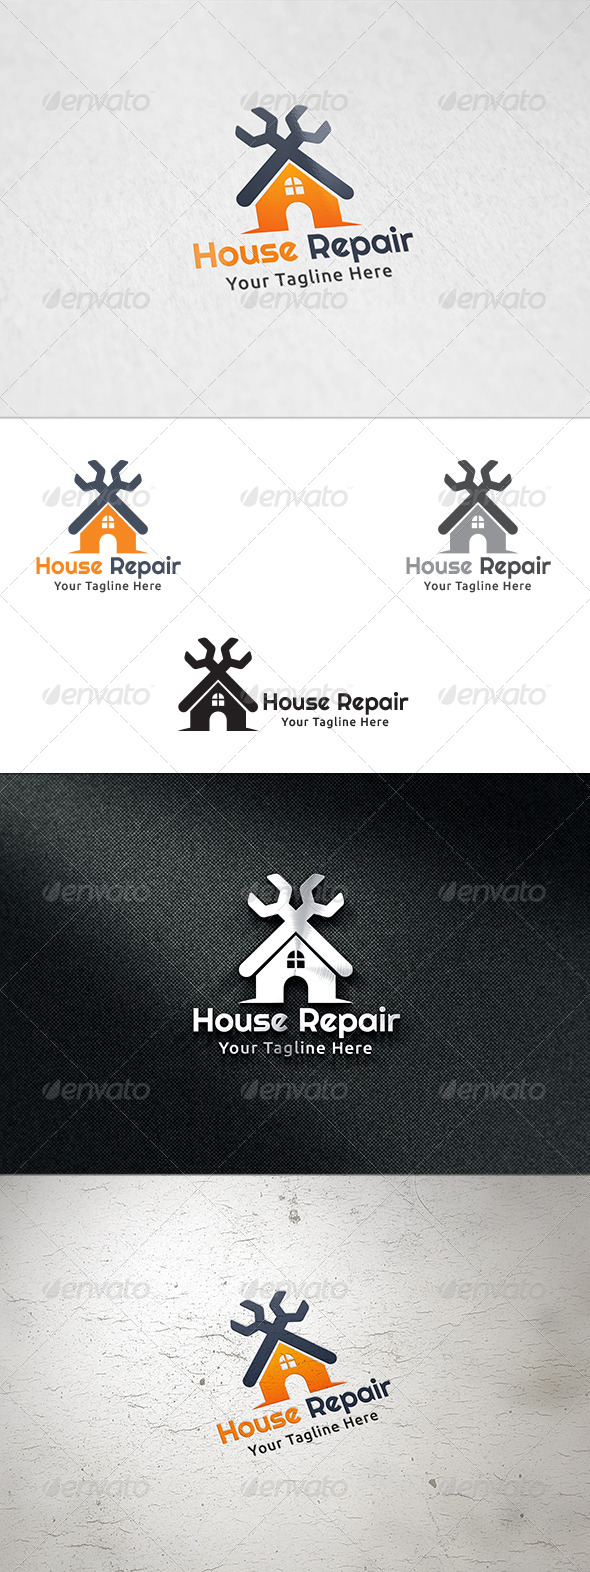 GraphicRiver House Repair Logo Template 8765283